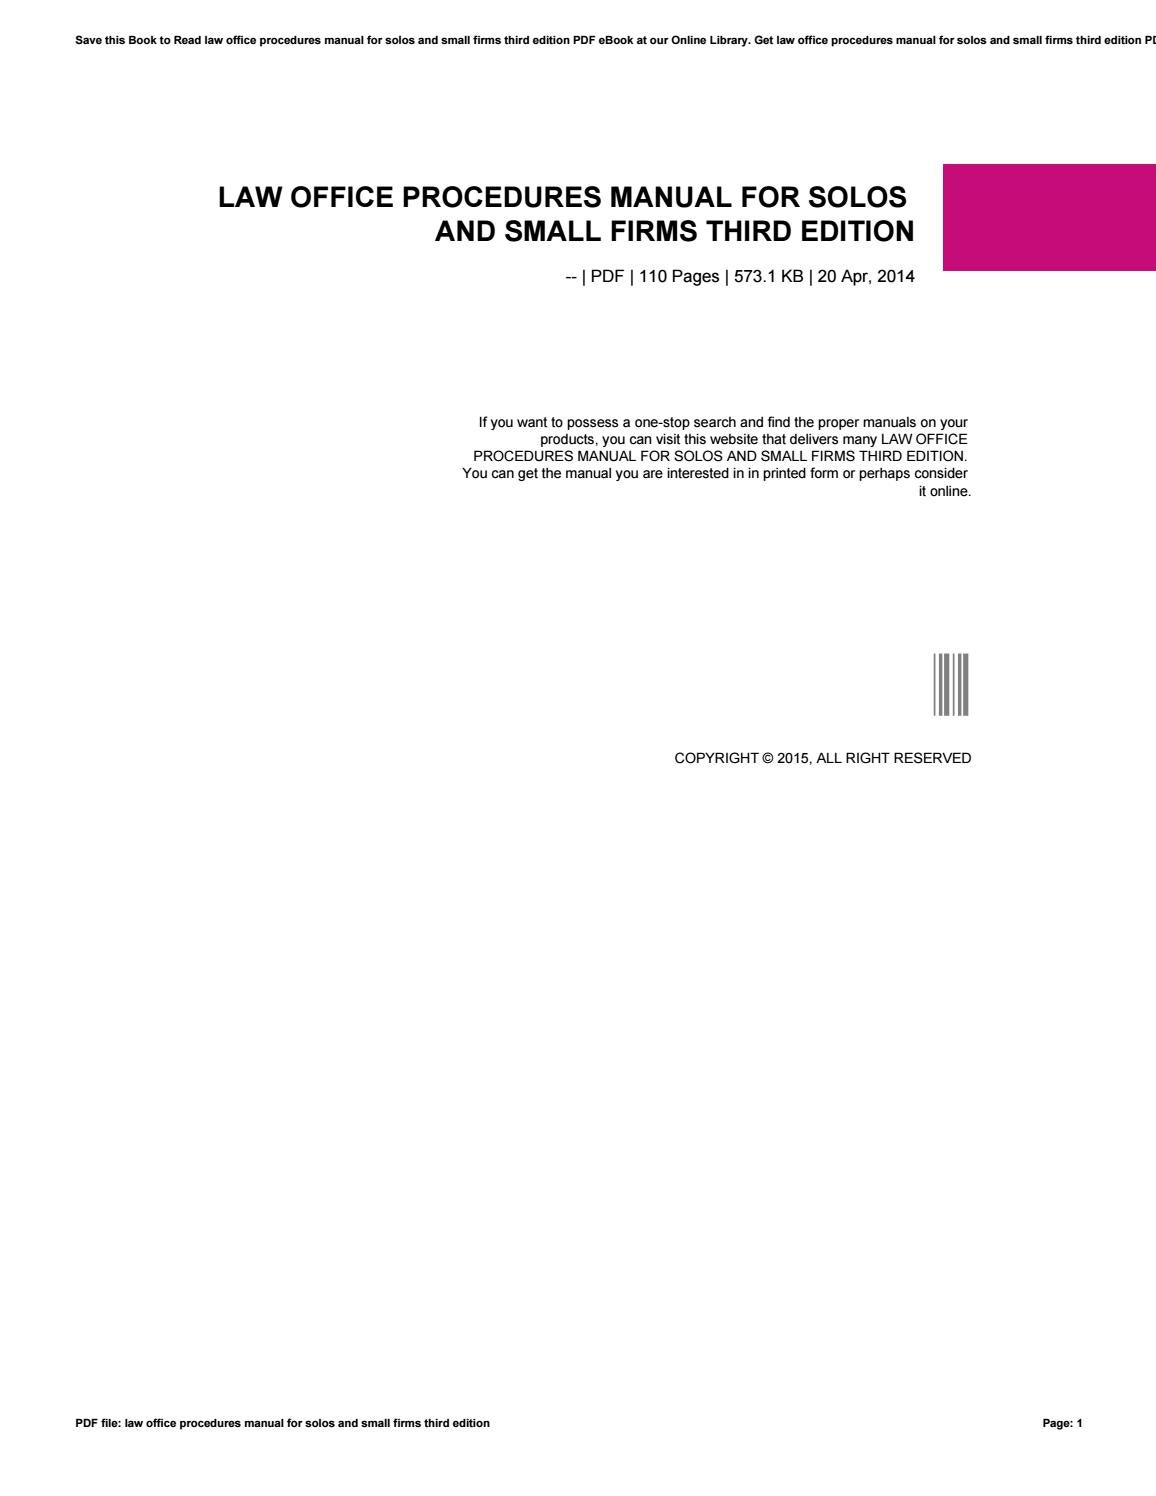 Law office procedures manual for solos and small firms third edition by  rblx83 - issuu